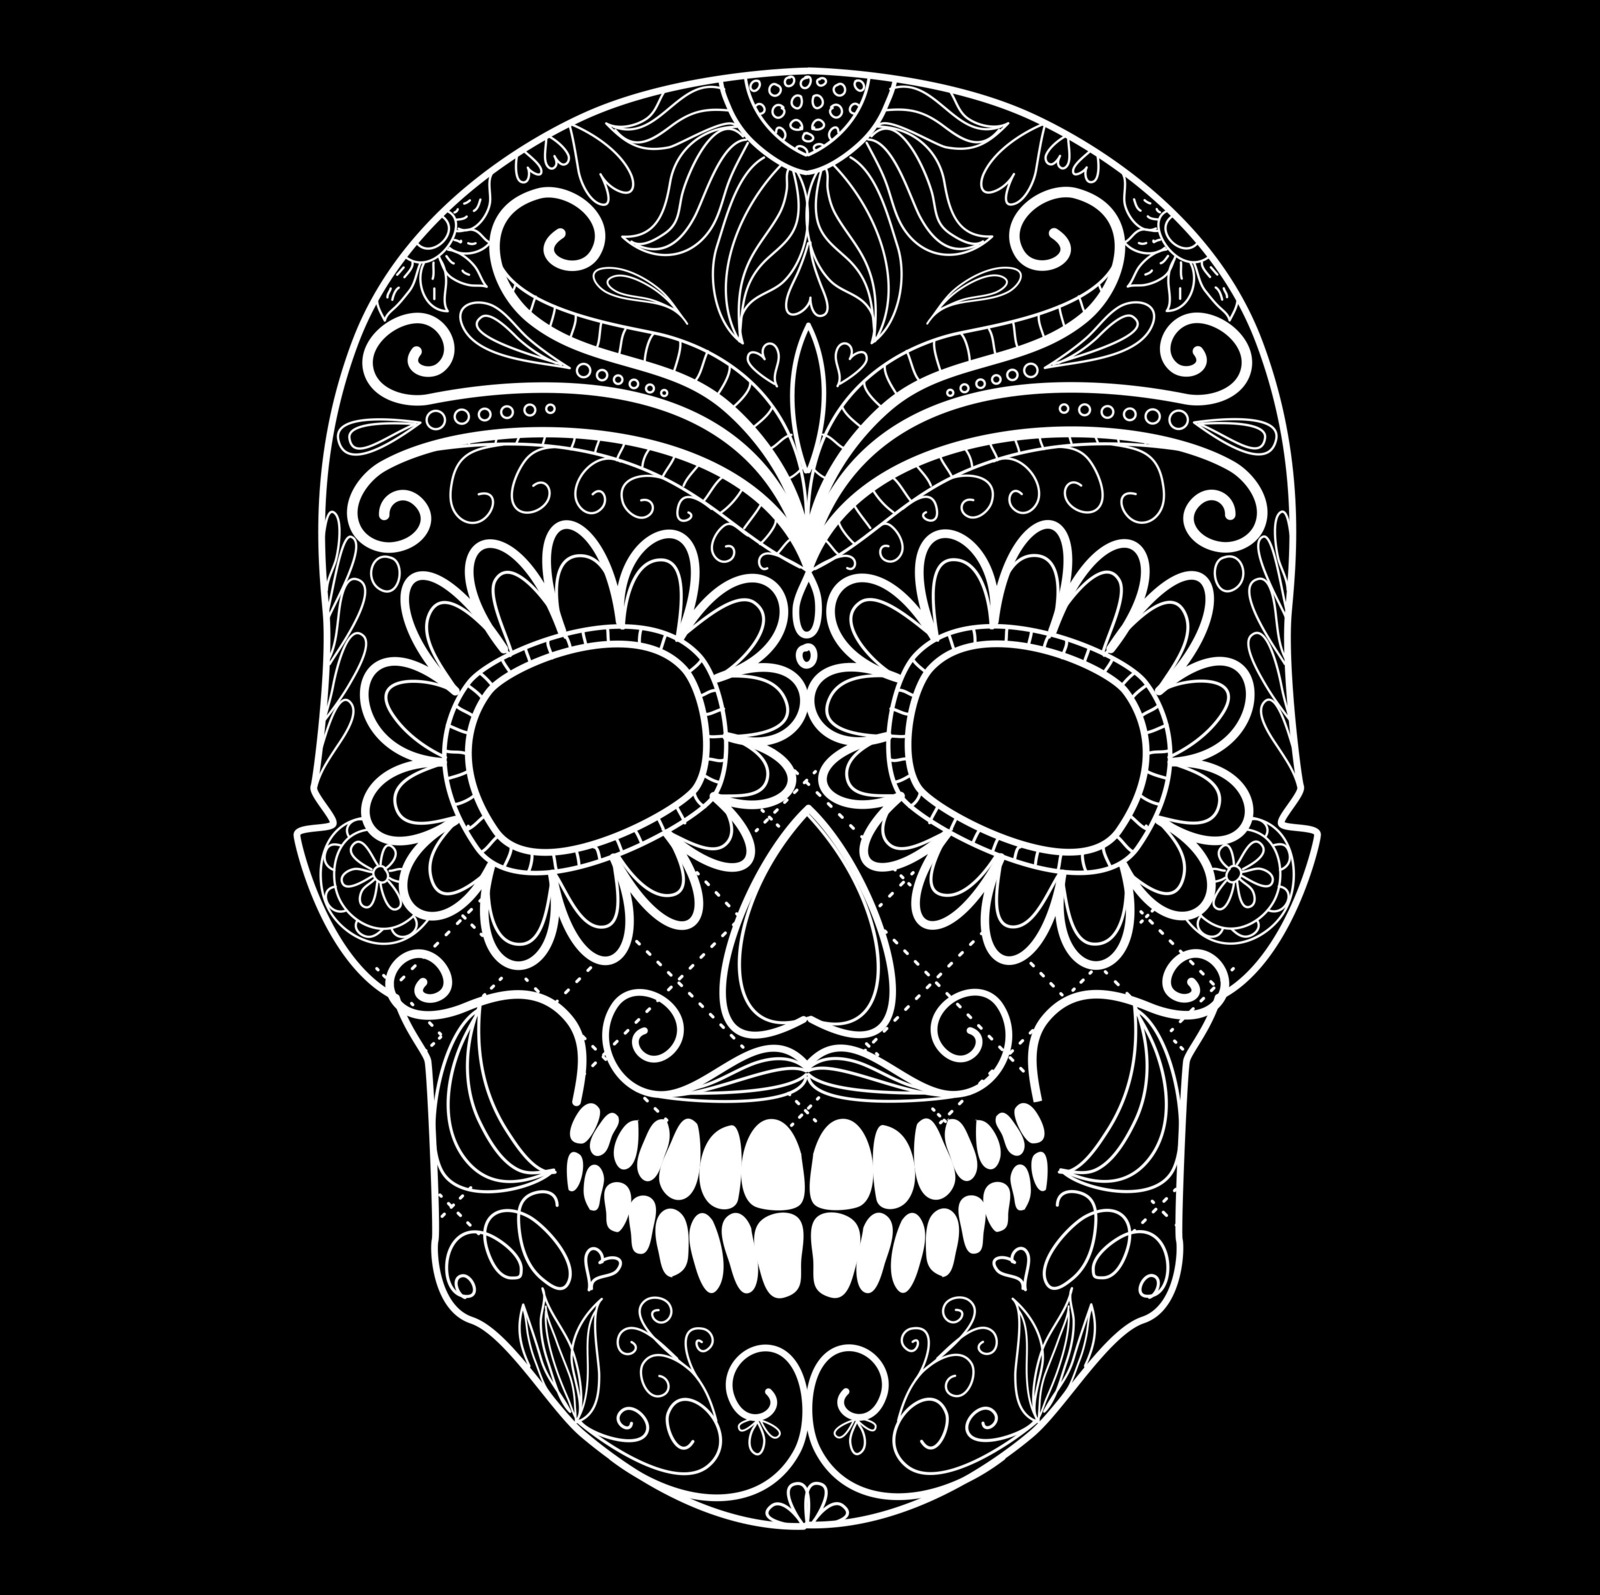 Vintage owl lamps - Day Of The Dead Black And White Skull And Grungy Skull